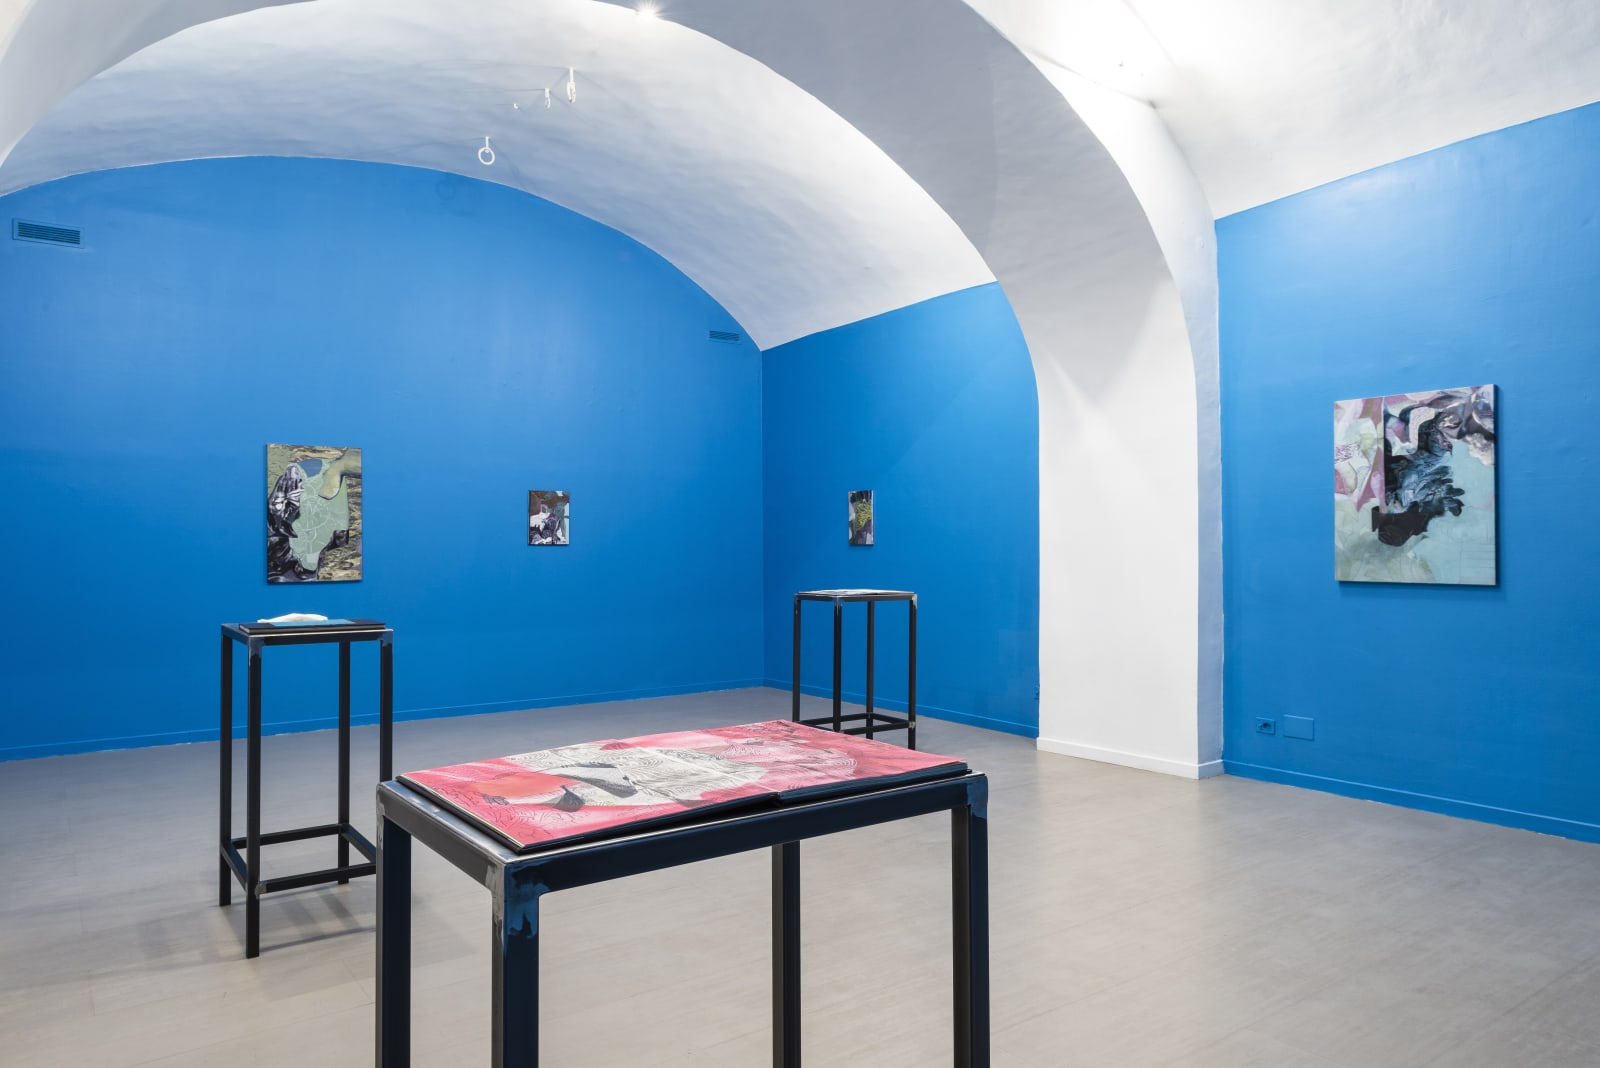 Alessandro Roma, One foot in the world and the other in the stillness, installation view at z2o Sara Zanin Gallery Rome